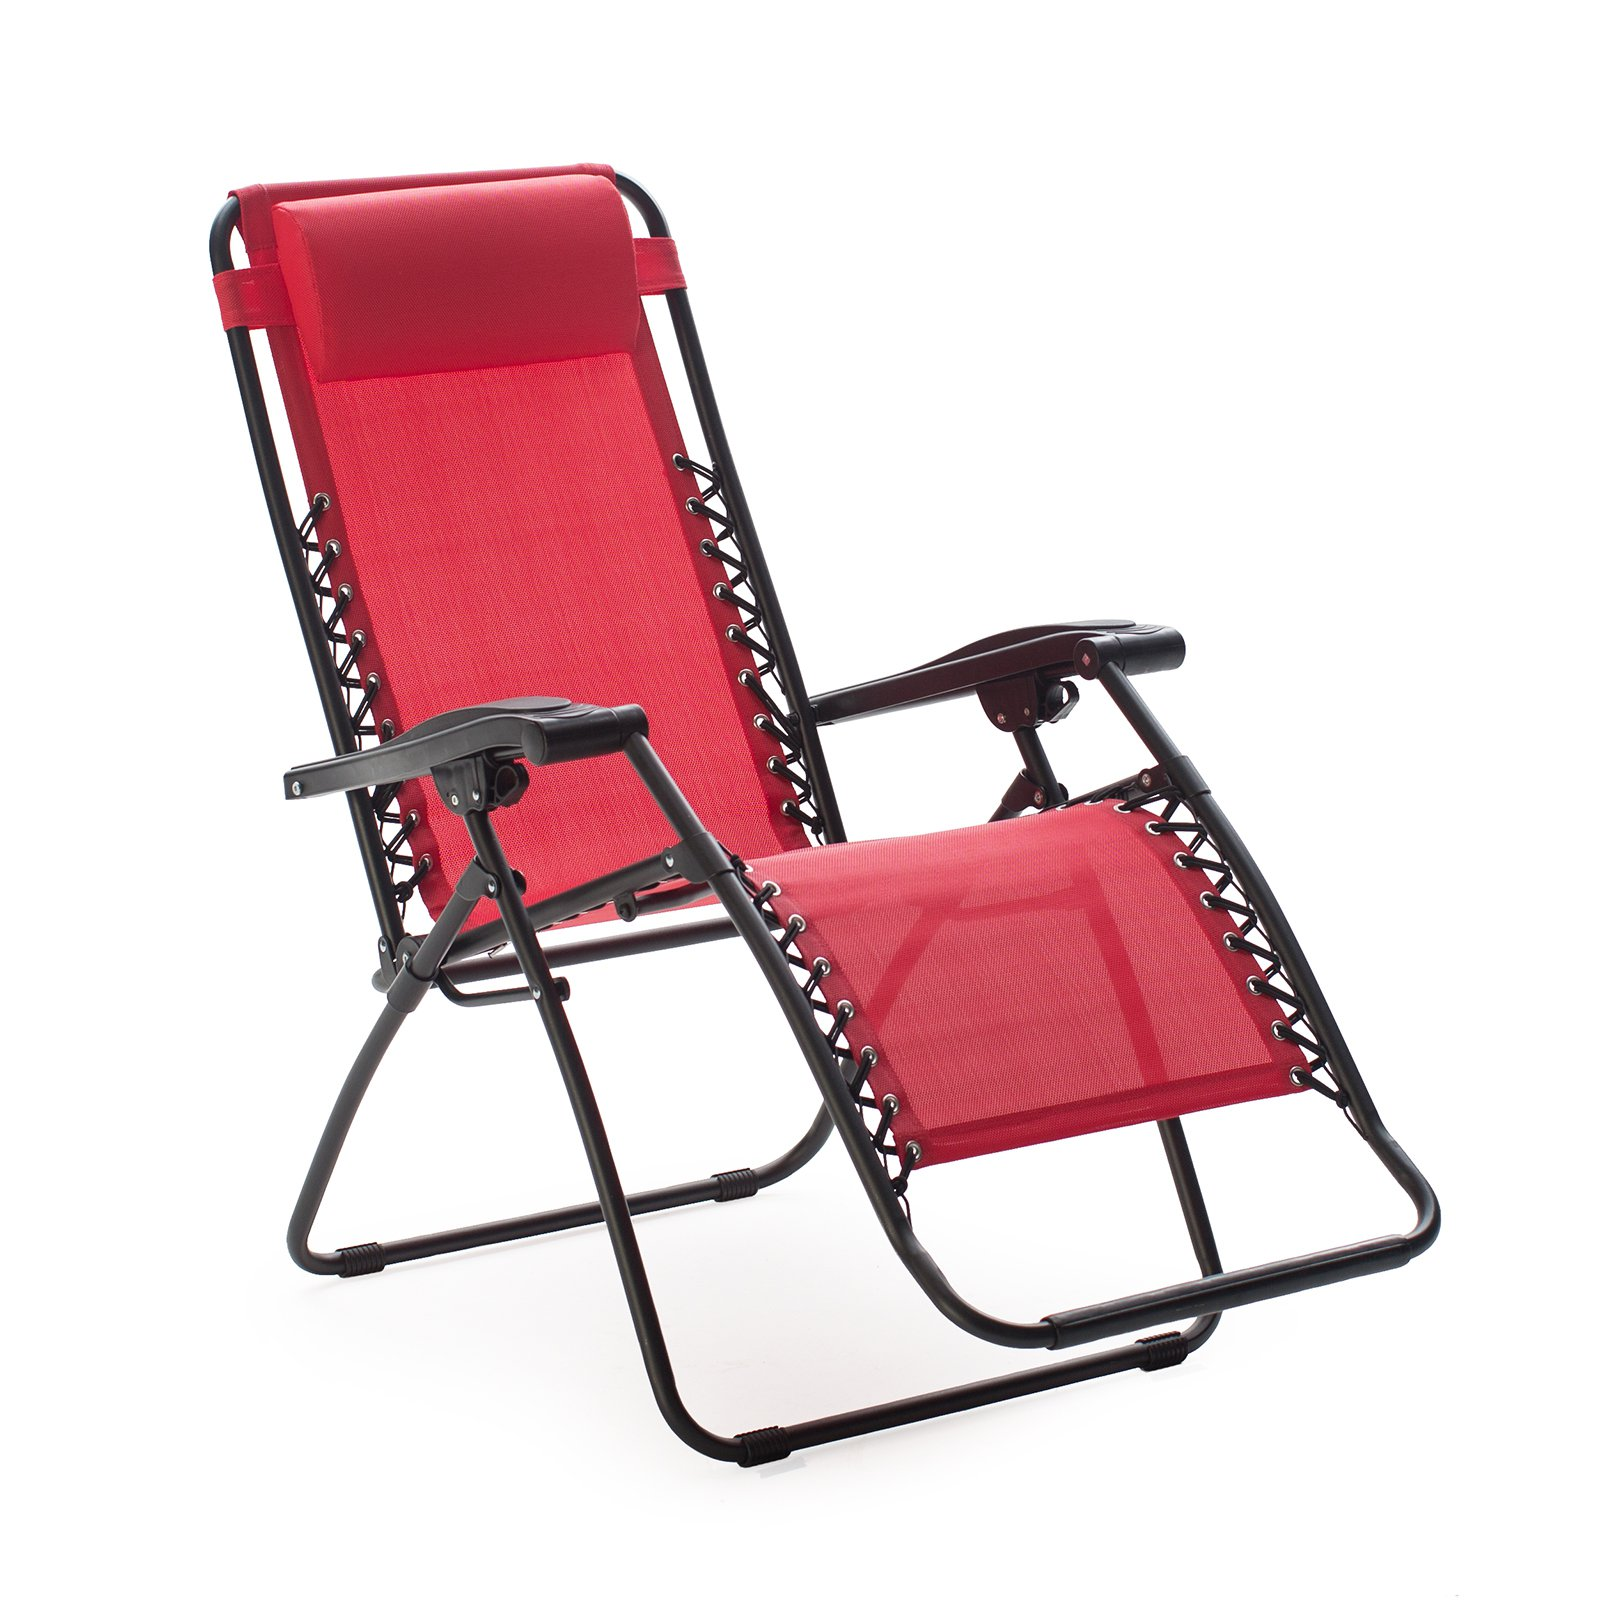 Caravan Global Sports Oversized Zero Gravity Chair   Walmart.com